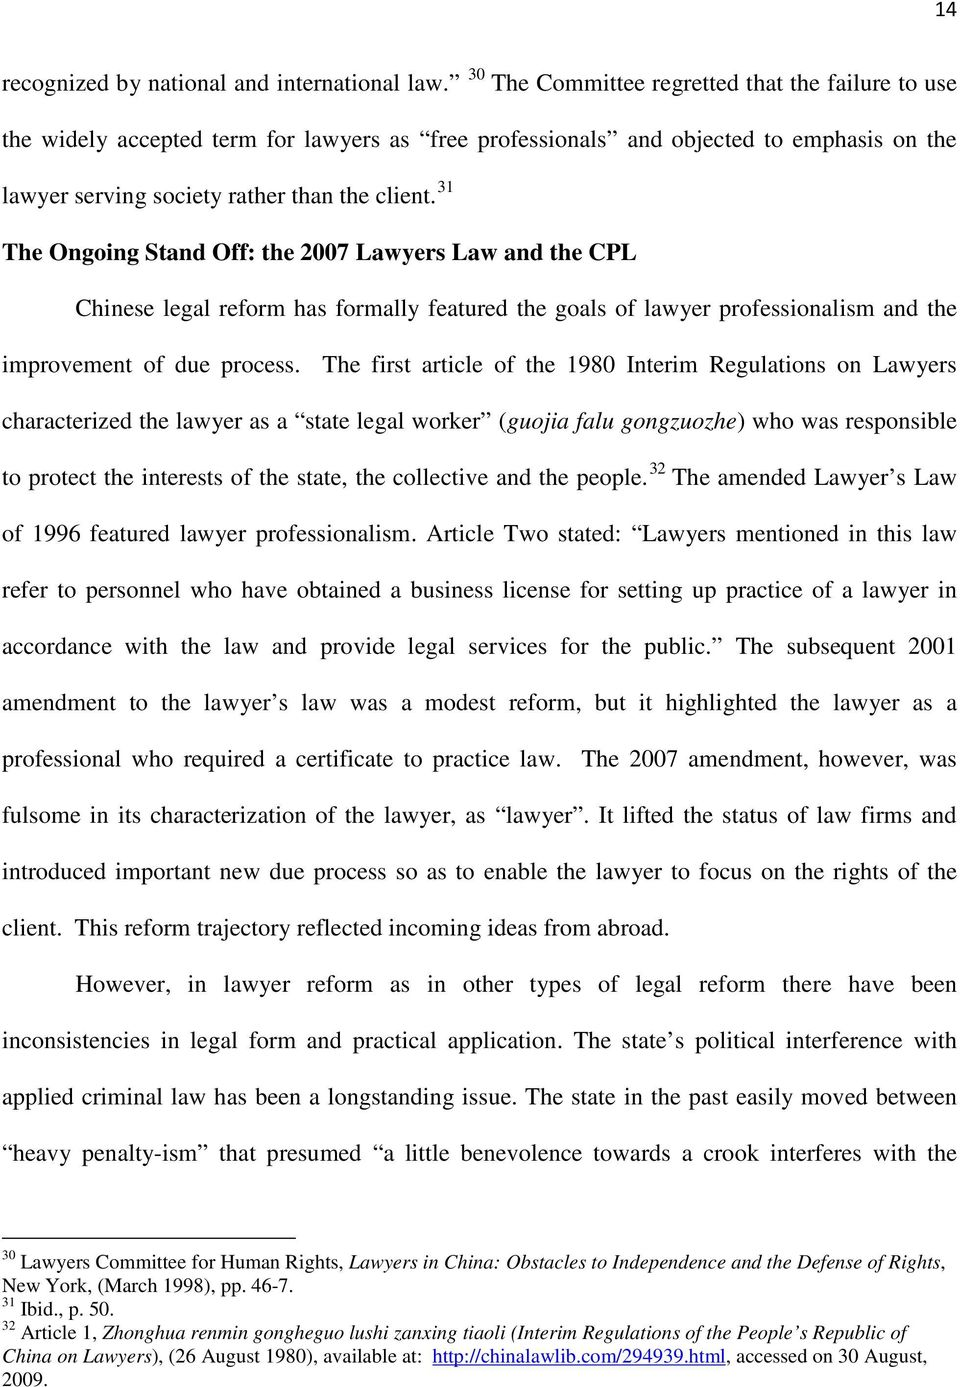 31 The Ongoing Stand Off: the 2007 Lawyers Law and the CPL Chinese legal reform has formally featured the goals of lawyer professionalism and the improvement of due process.